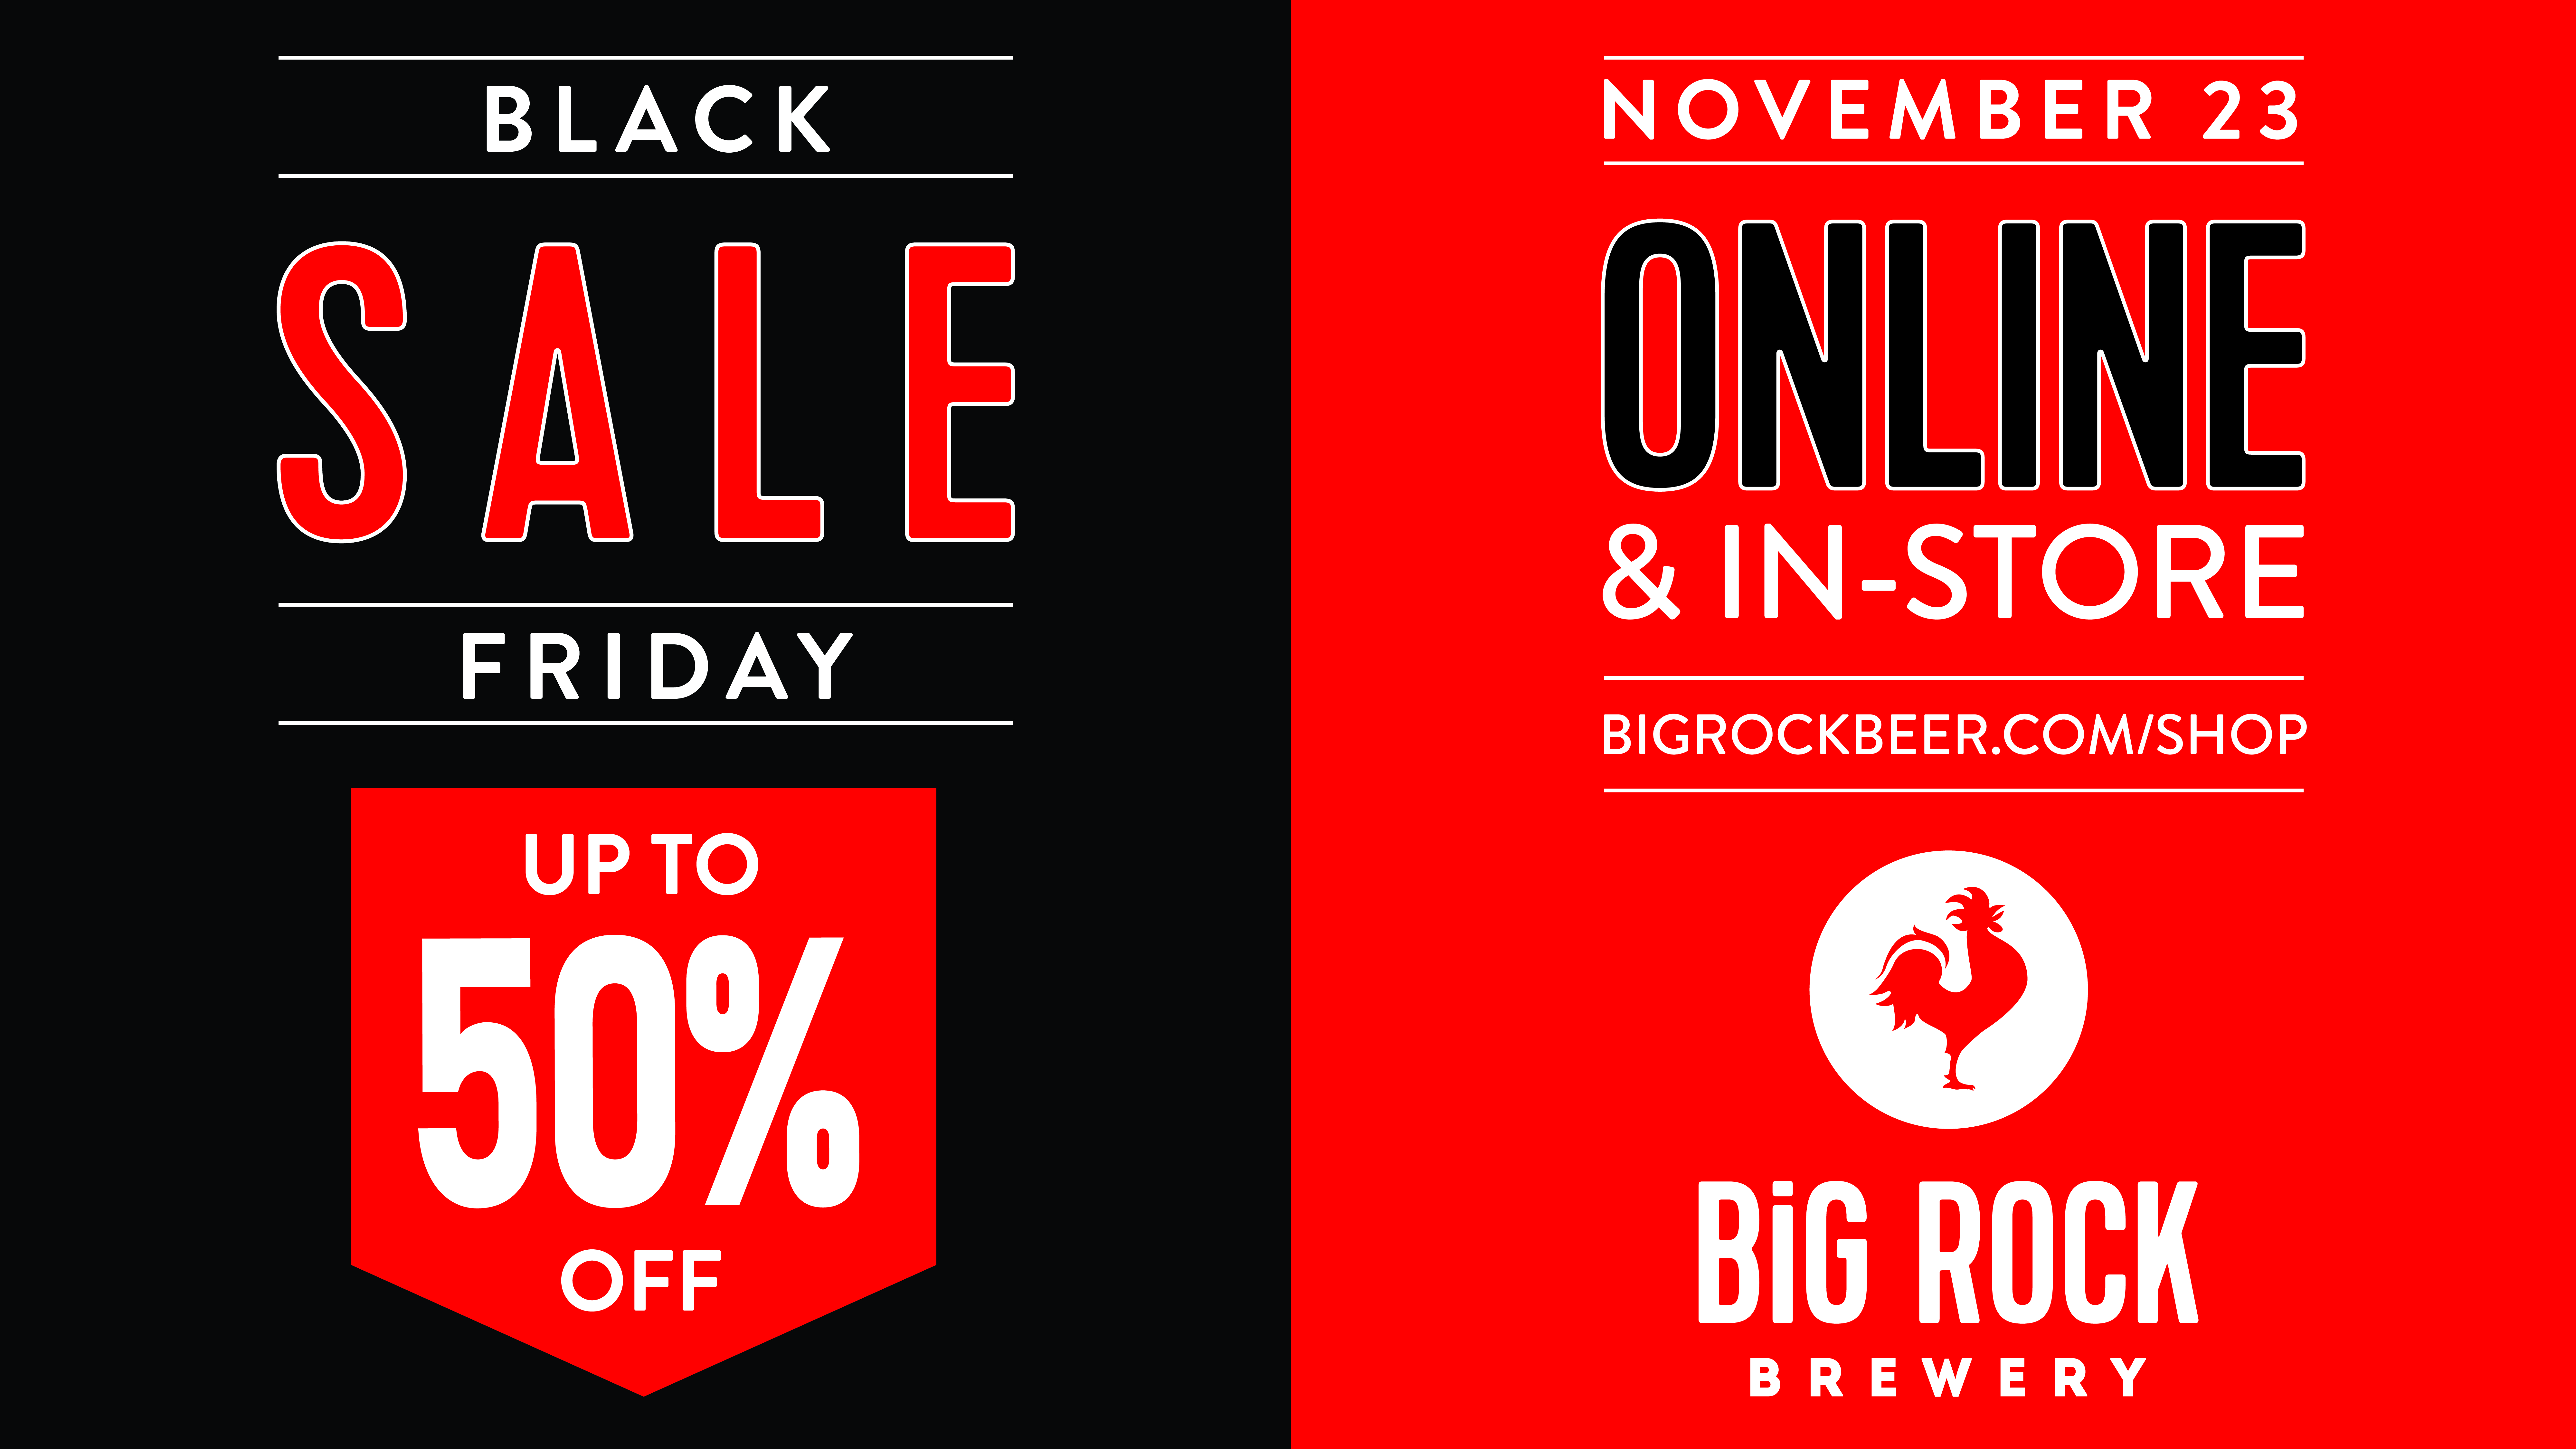 Black Friday Sale Black Friday Sale Big Rock Brewery